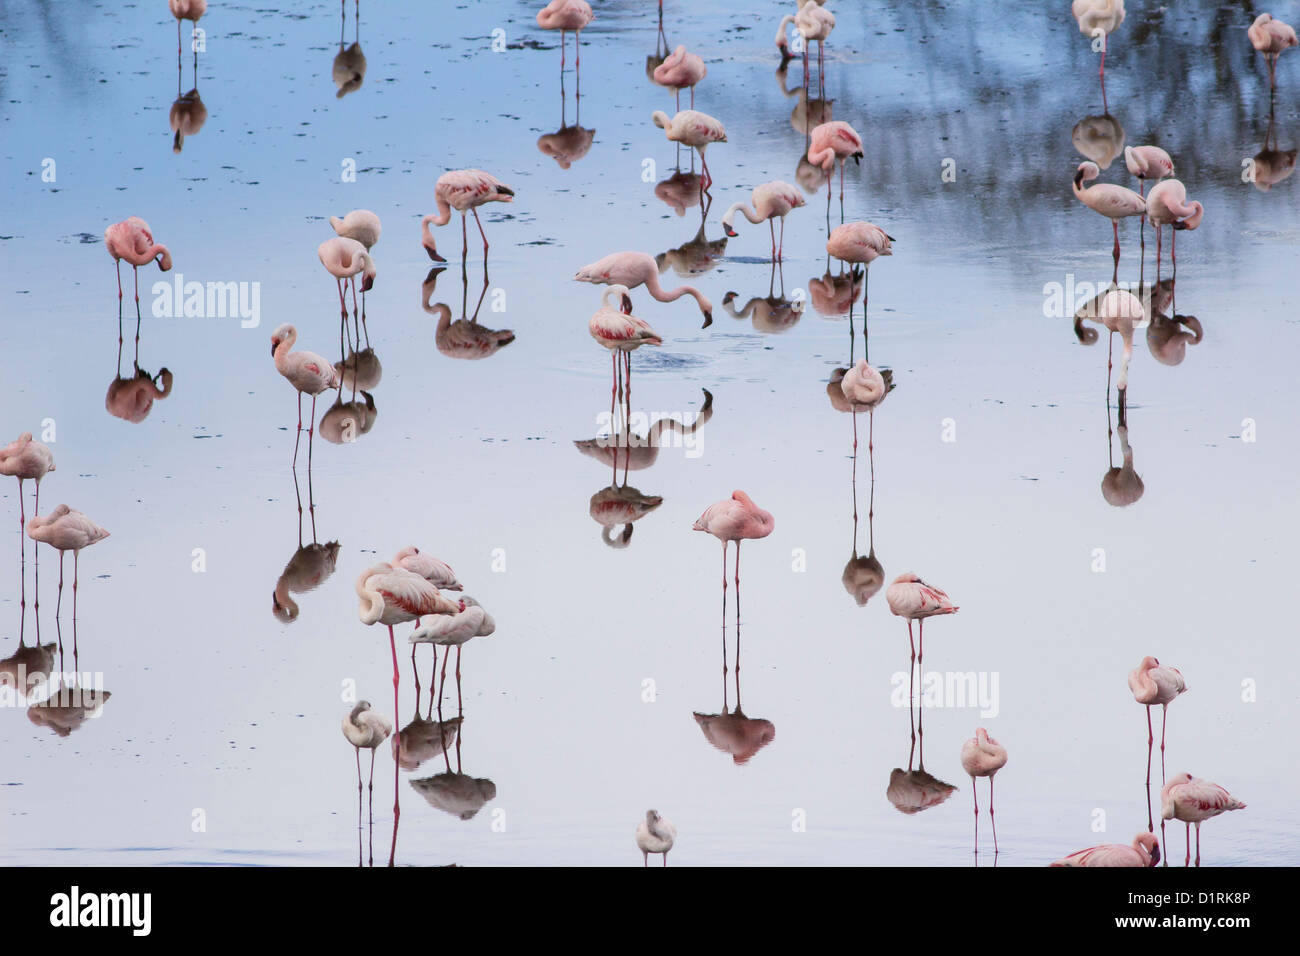 Flamingo in Arusha National Park. Safari in Tanzania Africa - Stock Image